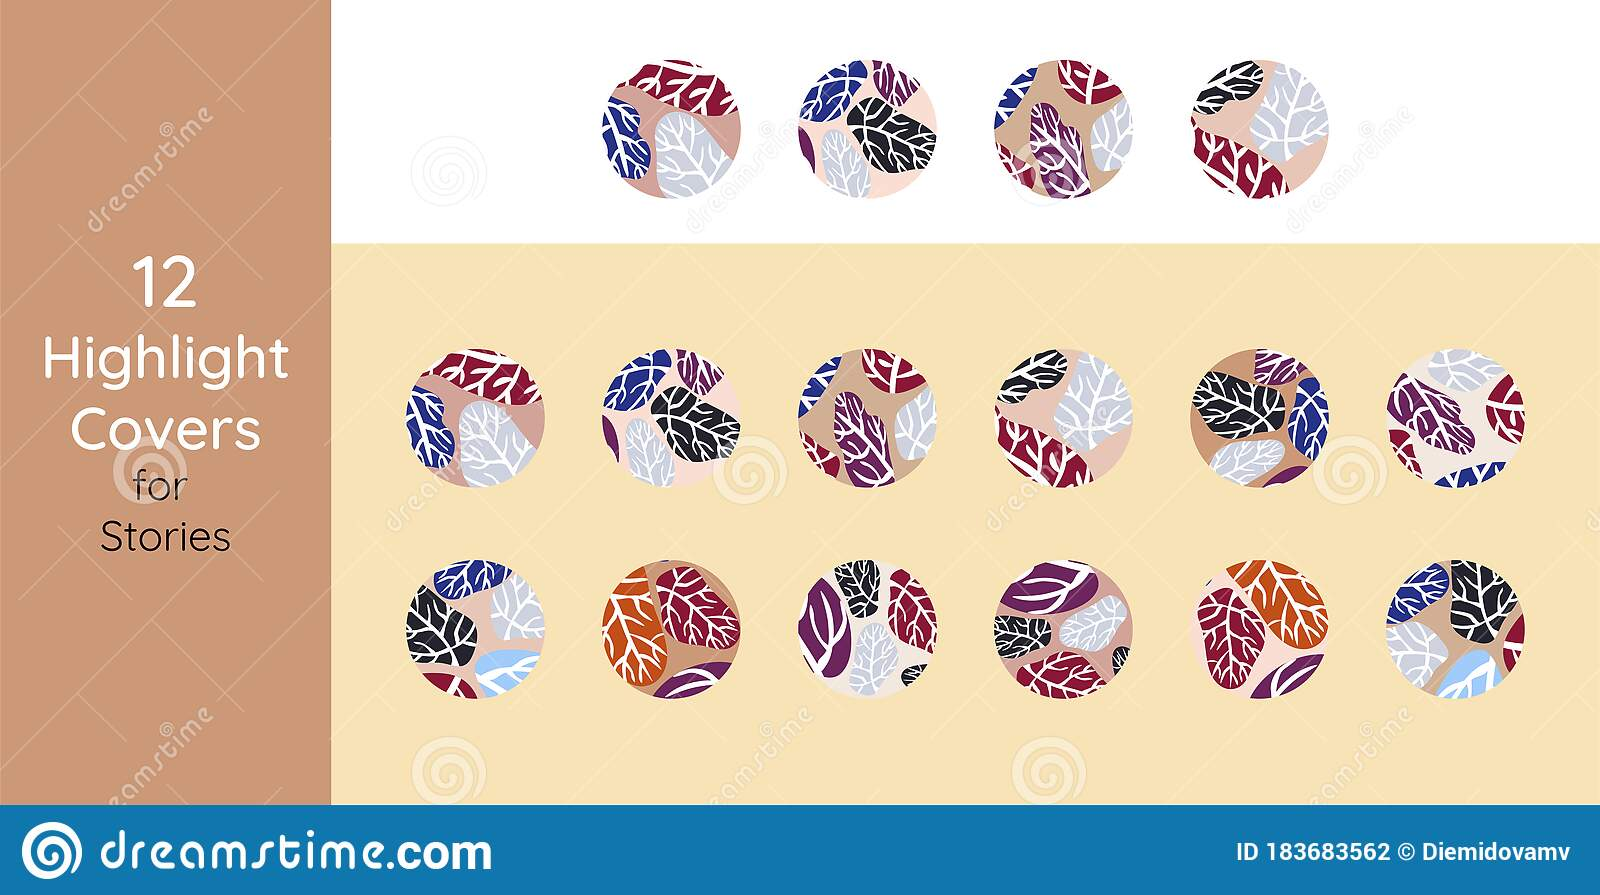 Instagram Highlights Stories Covers Icons Set Perfect For Bloggers Set Of 12 Highlights Covers In Pink And Copper Stock Vector Illustration Of History Cosmetics 183683562